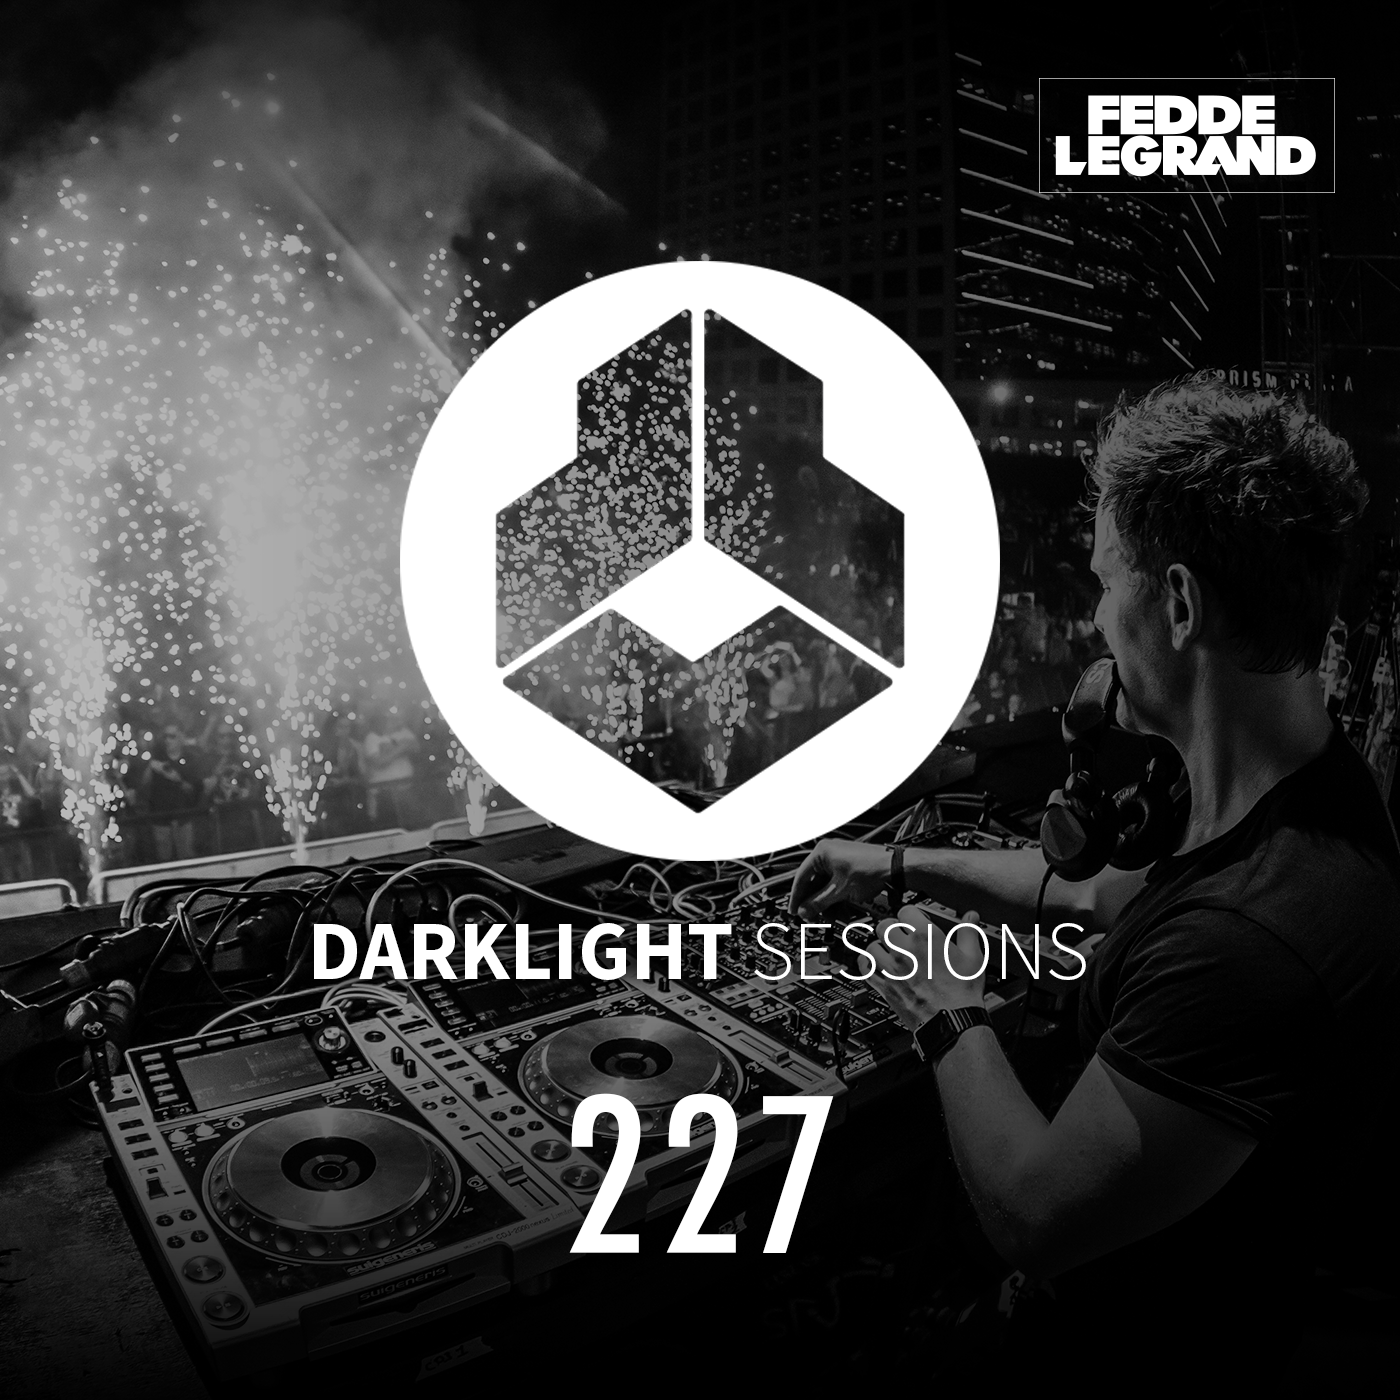 Darklight Sessions 227